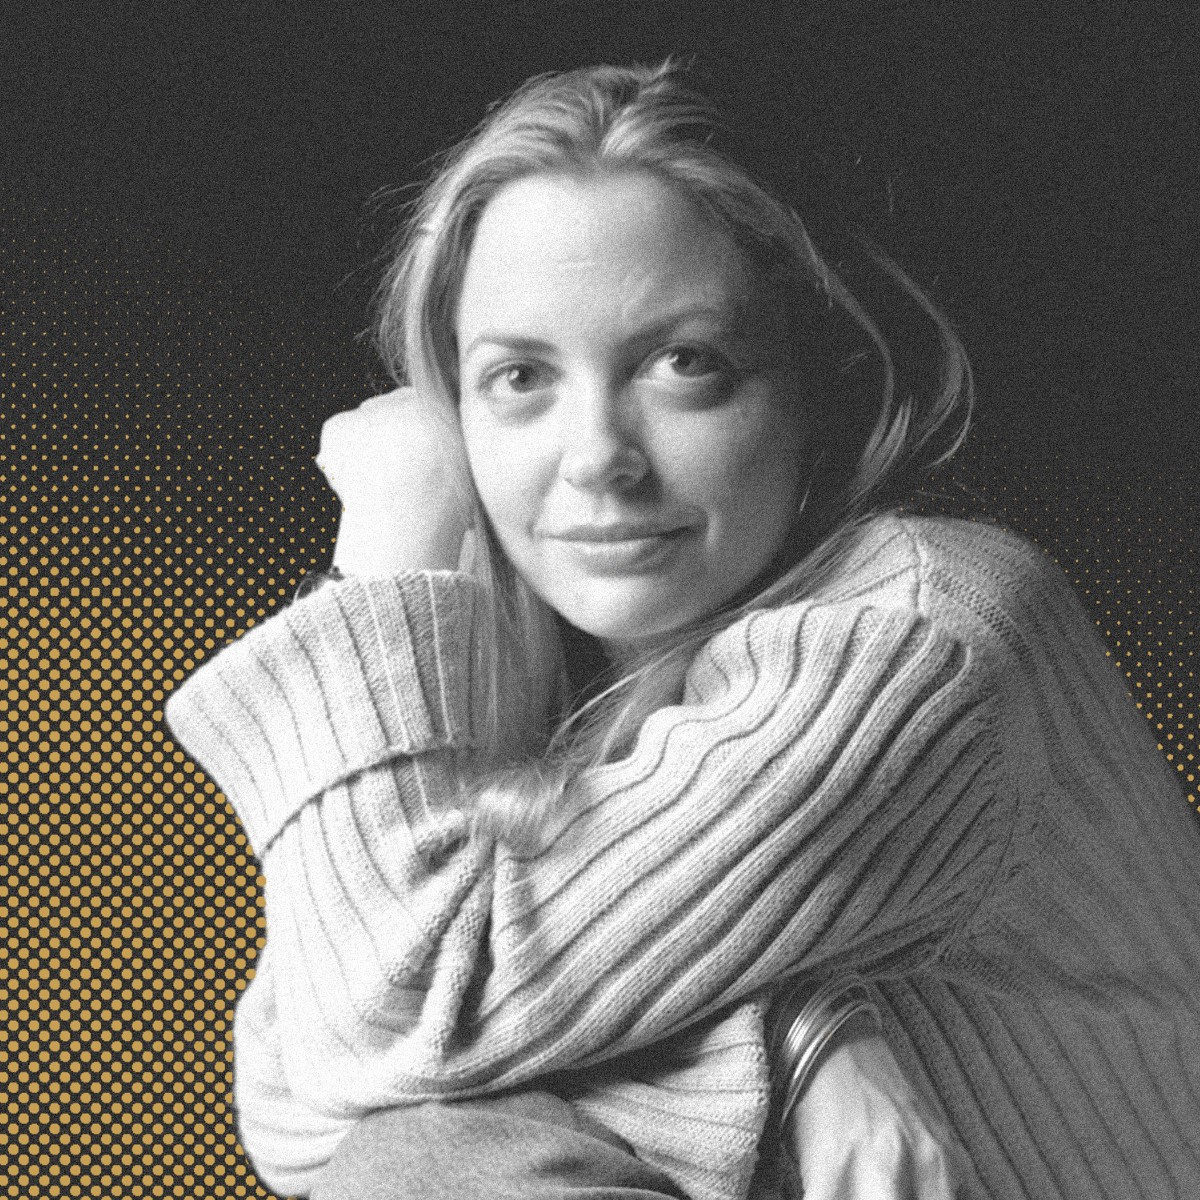 'I Believe in Love': Elizabeth Wurtzel's Final Year, In Her Own Words